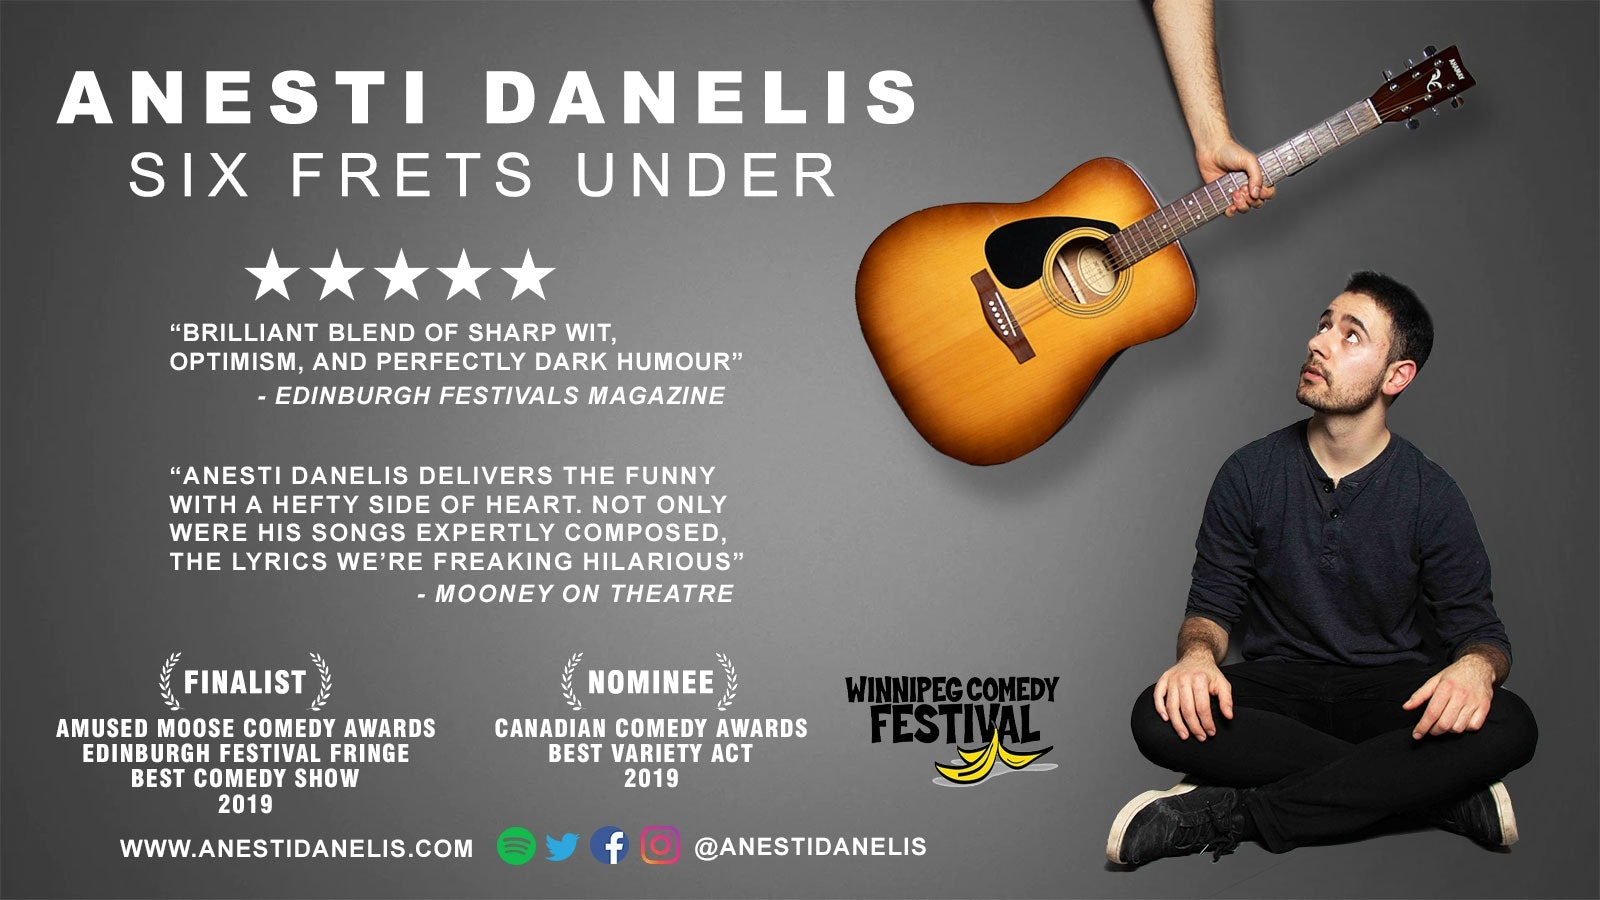 Anesti Danelis: Six Frets Under